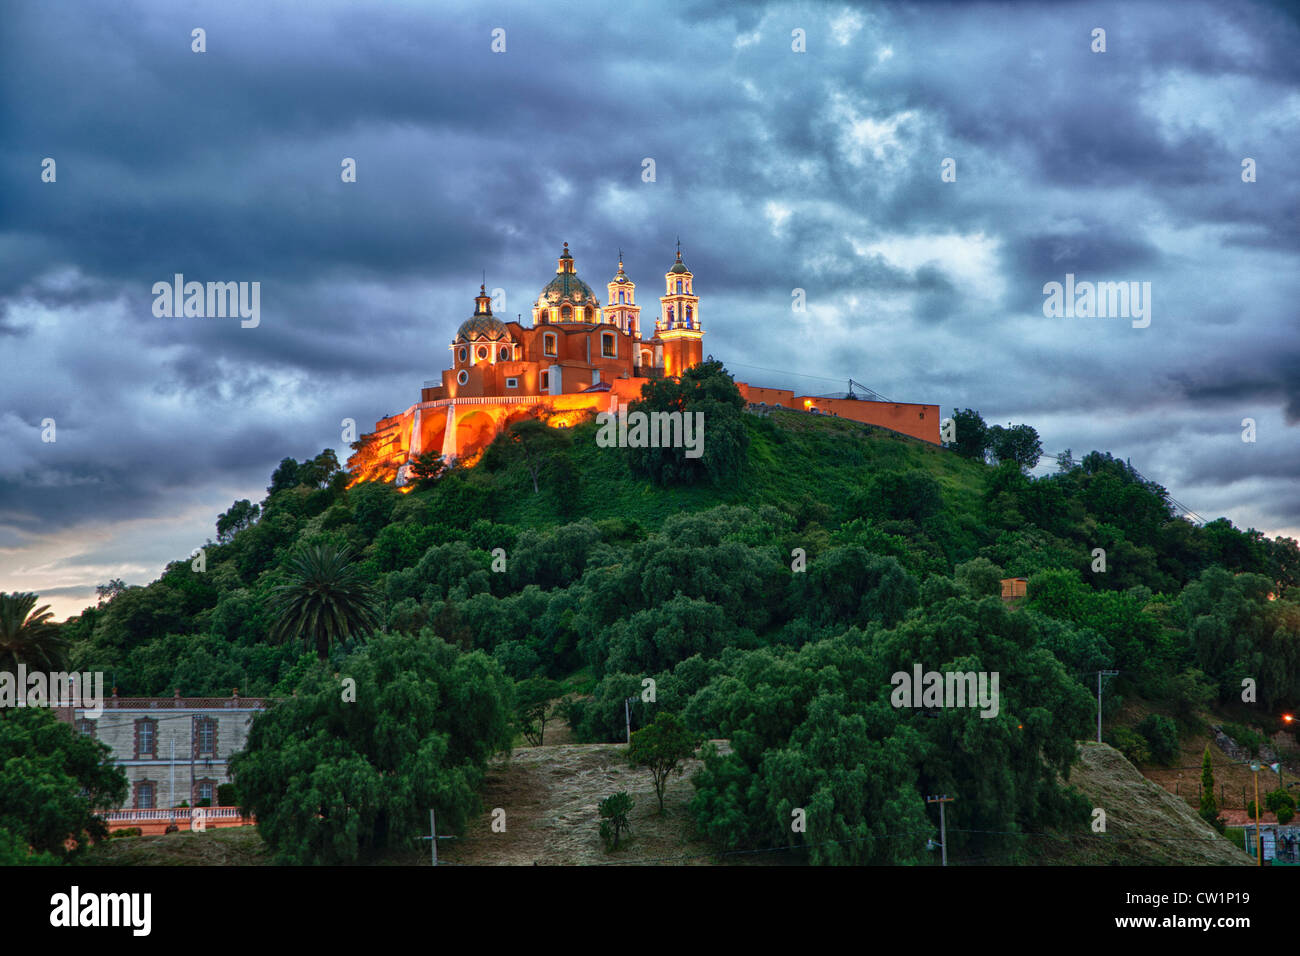 Church of Neustra Senor de los Remedios or Our Lady of Remedios in Cholula, Mexico - Stock Image